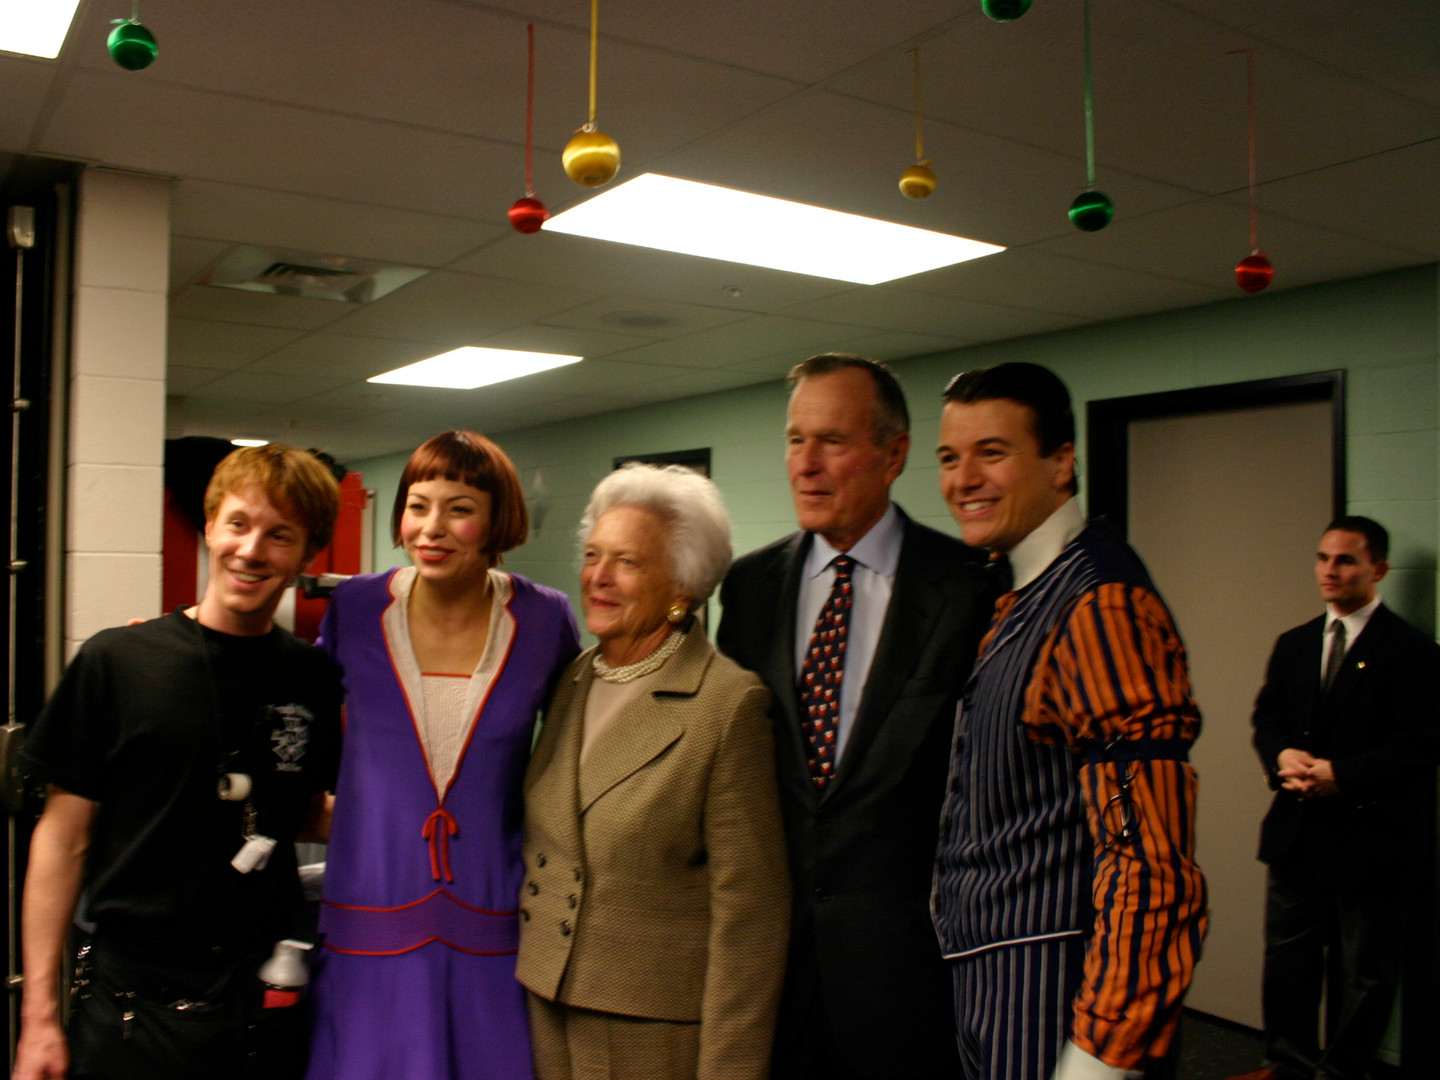 Darcie & Troy with Pres. and Mrs. Bush